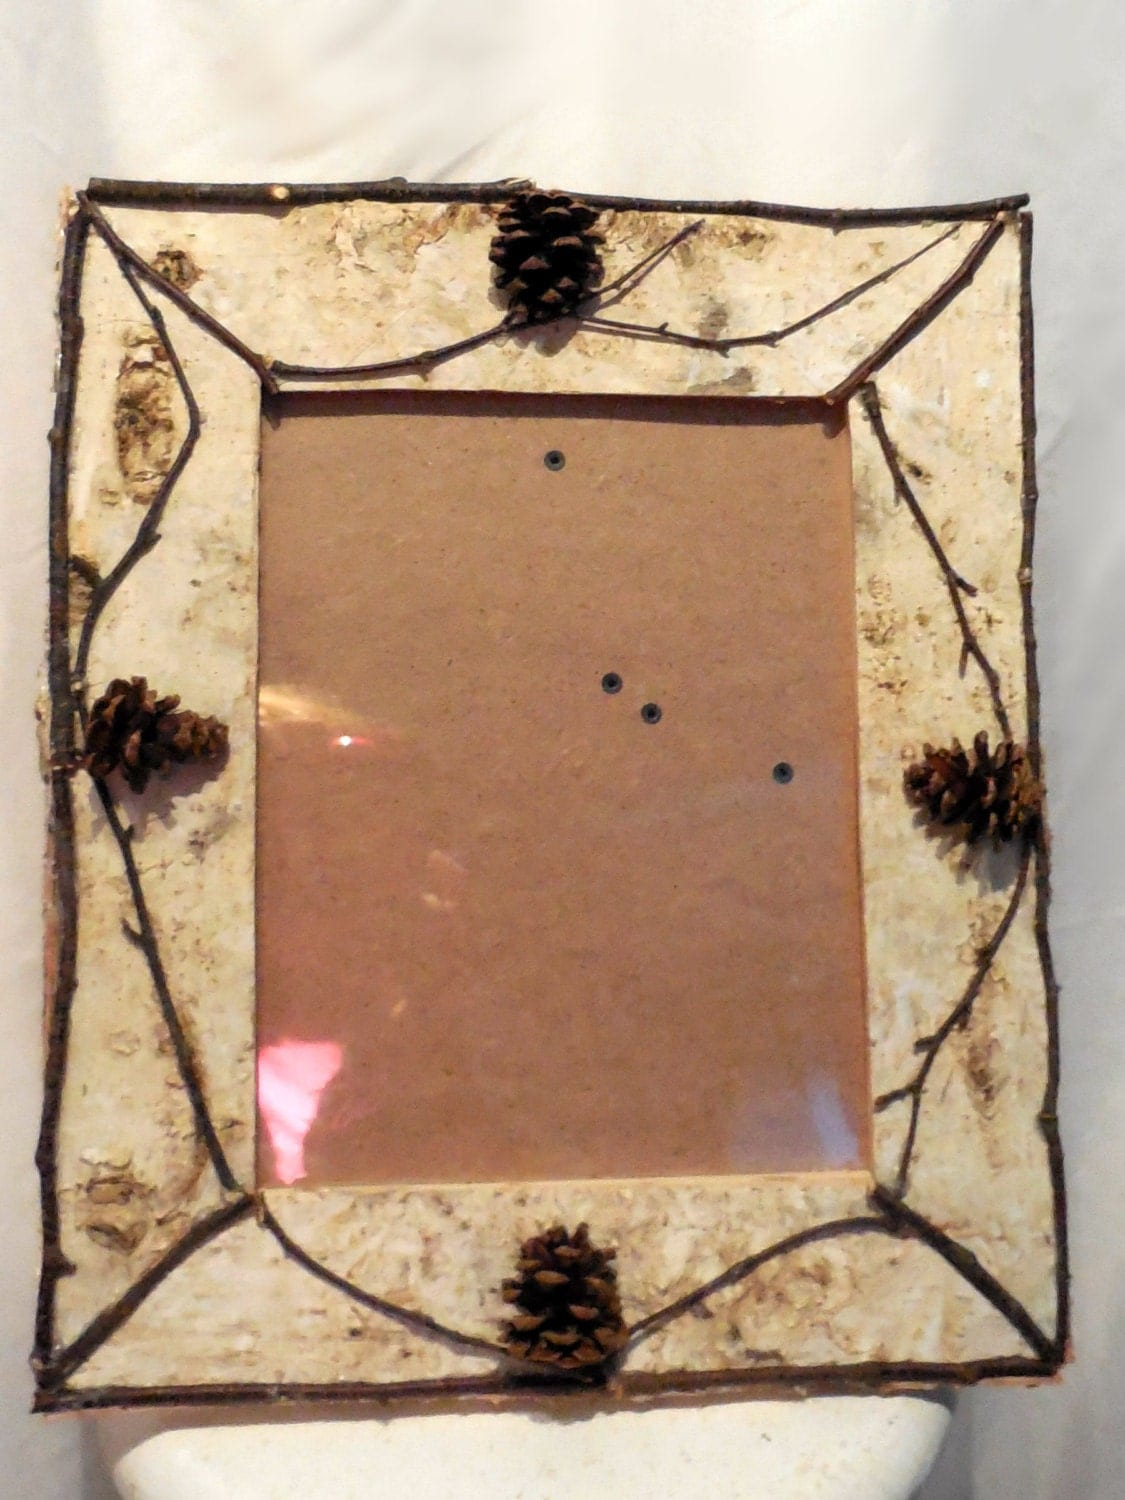 Birch bark picture frame hand crafted by